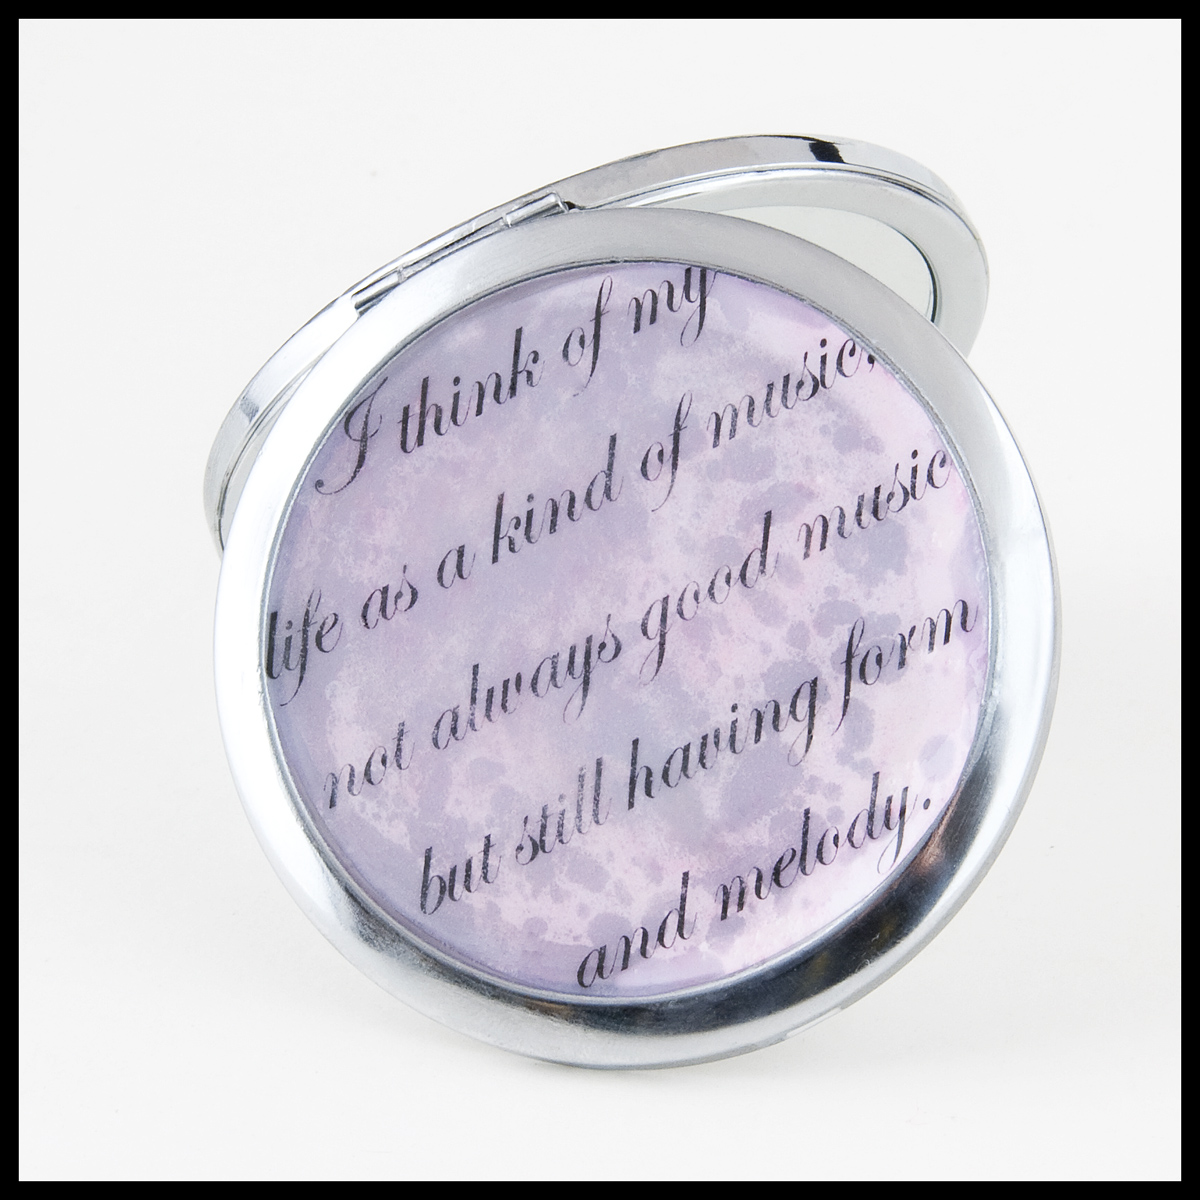 Music-themed mirror compacts